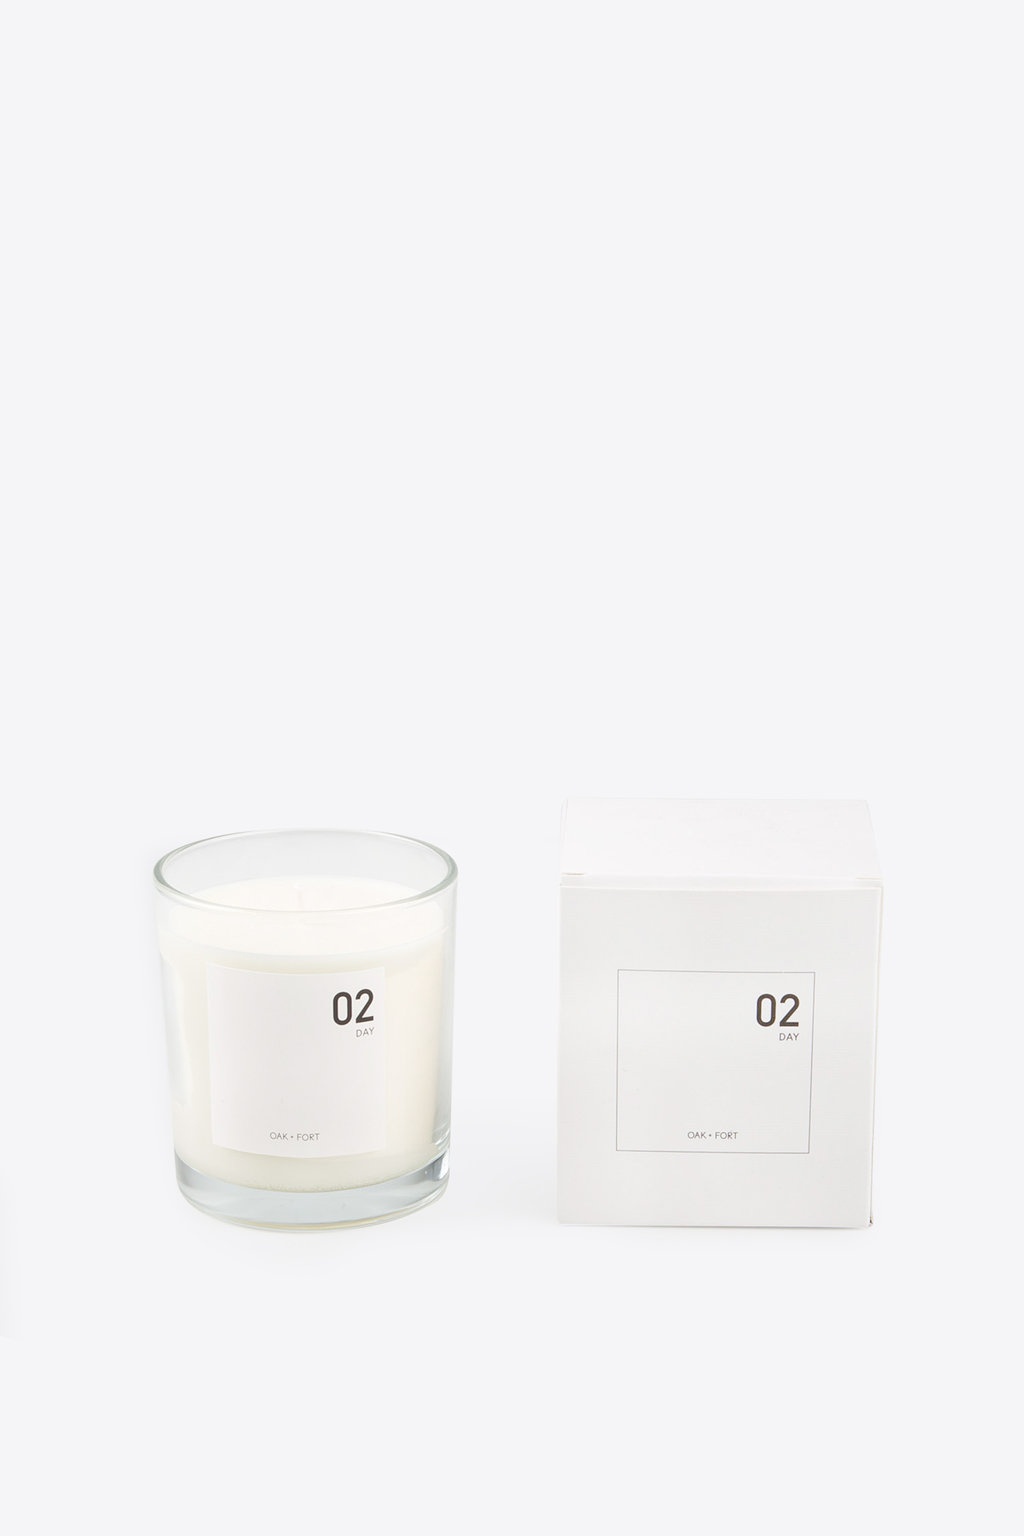 02 Day Candle 1036 Cream 1